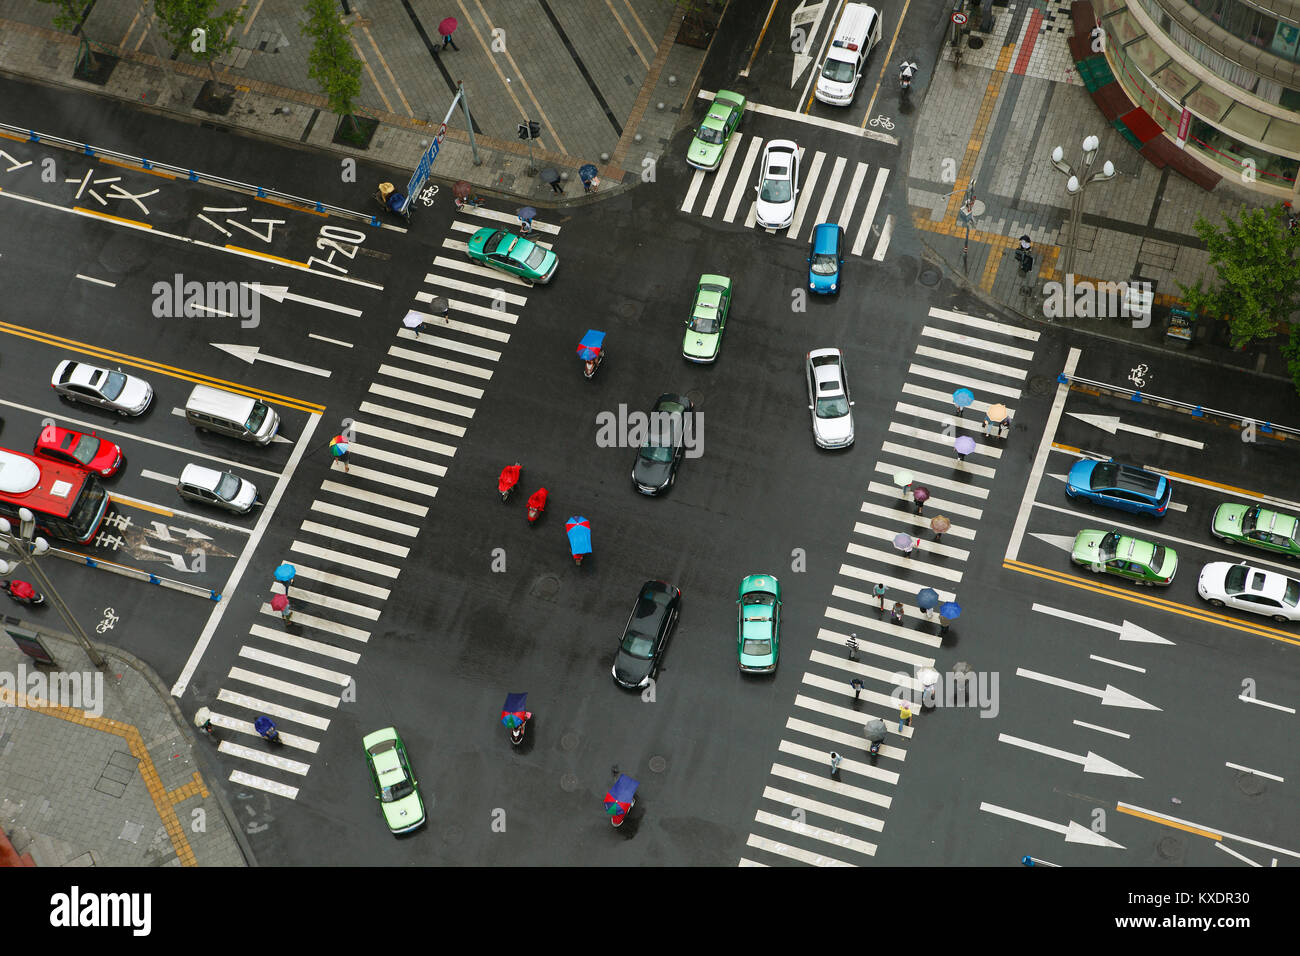 Crossroads from above, Chengdu, Sichuan, China - Stock Image